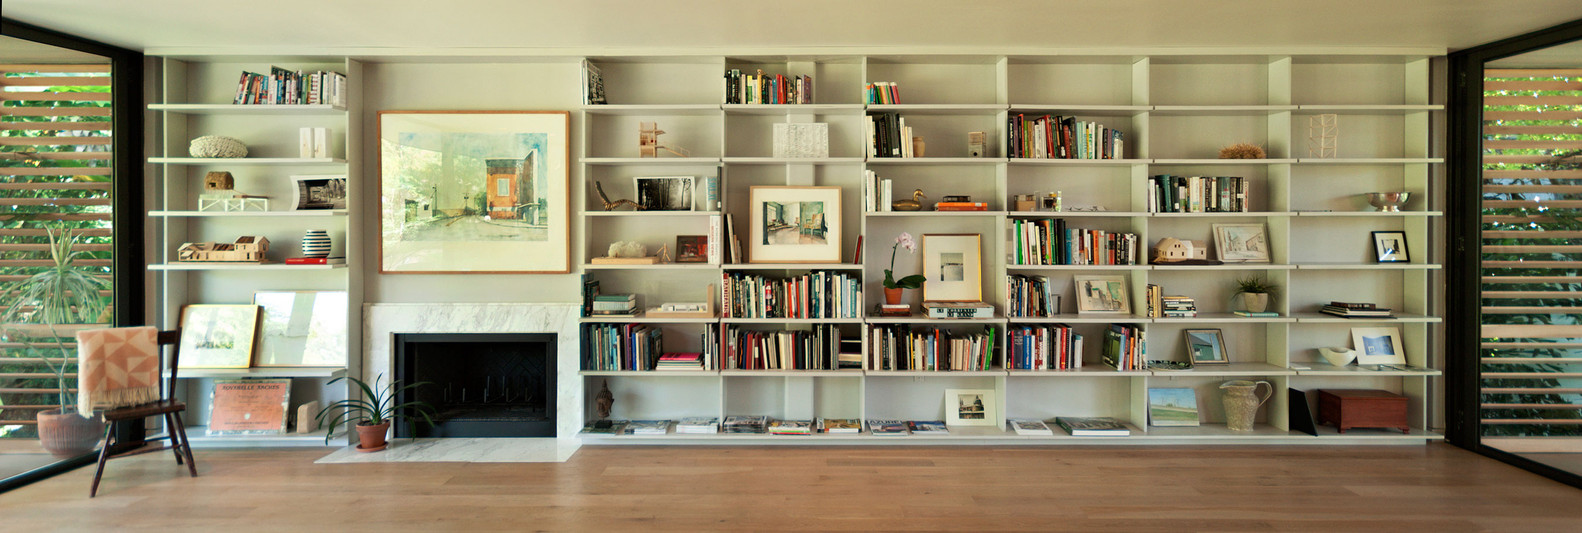 the bookcase in the living area.